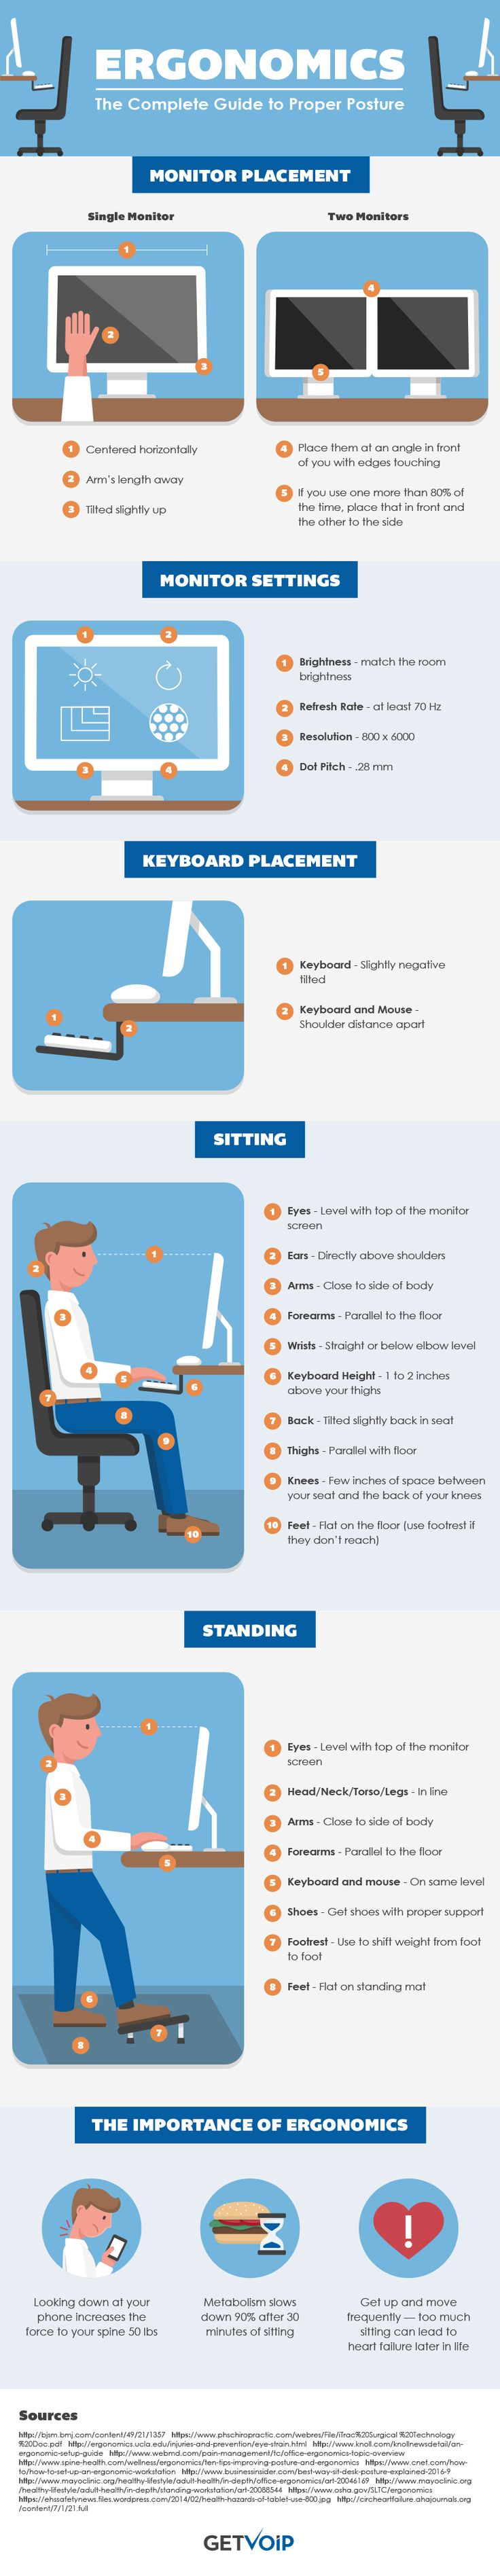 94 Best Creative Office Images On Pinterest Desks Offices And Recycled Computer Circuit Board Geekery Bookends For The Bookworm In This Infographic You Will Learn How Focusing Correct Posture Can Help Improve Your Workplace Ergonomics At No Cost All Is Study Of